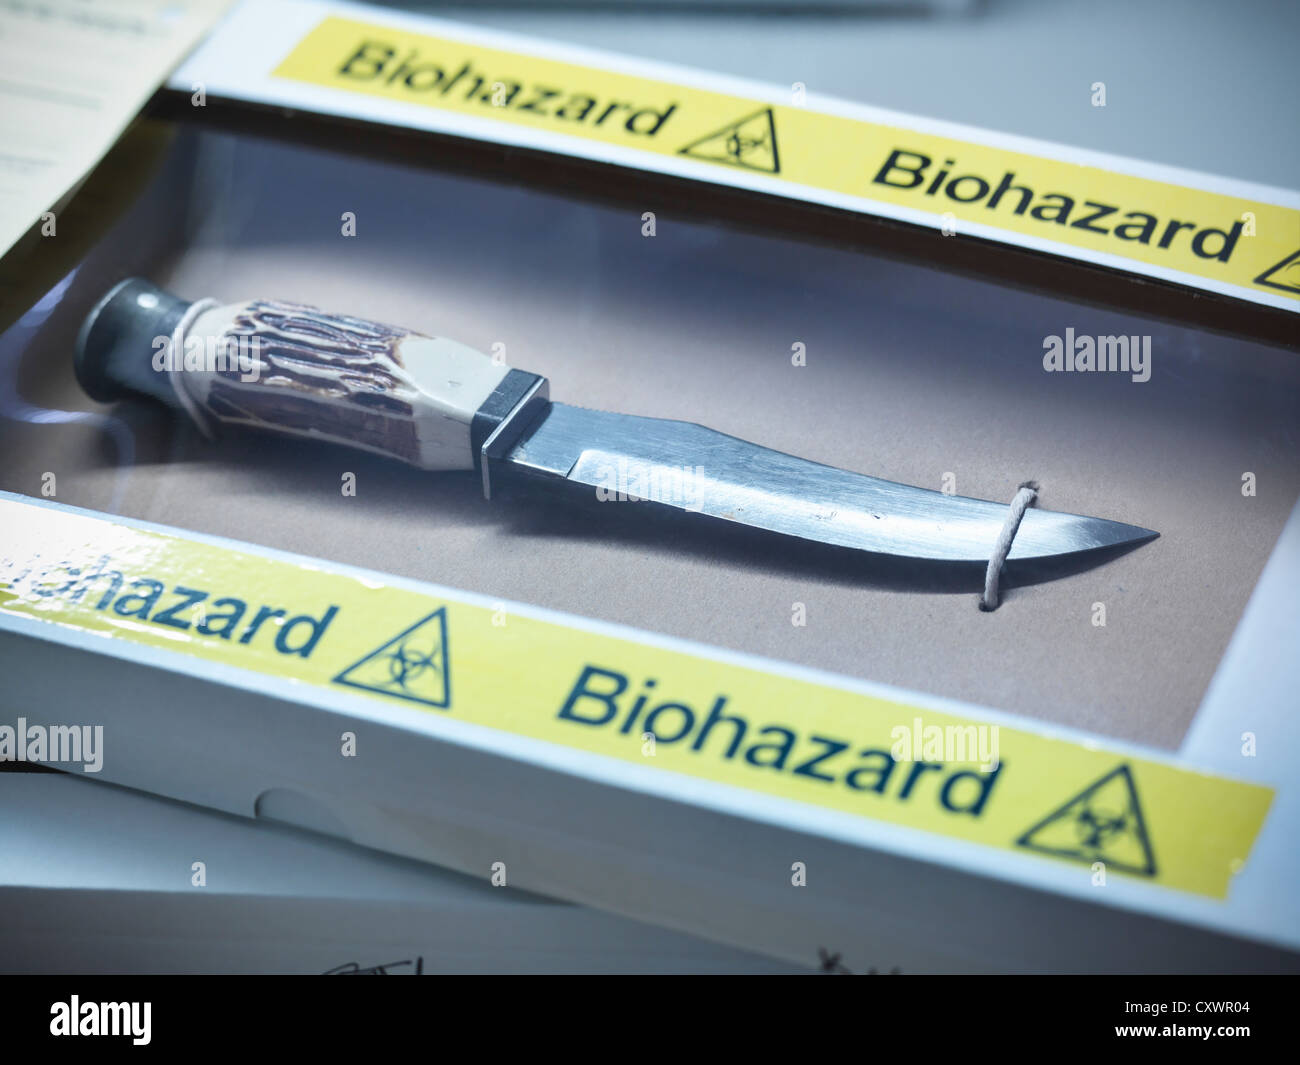 Knife in forensic biohazard box - Stock Image